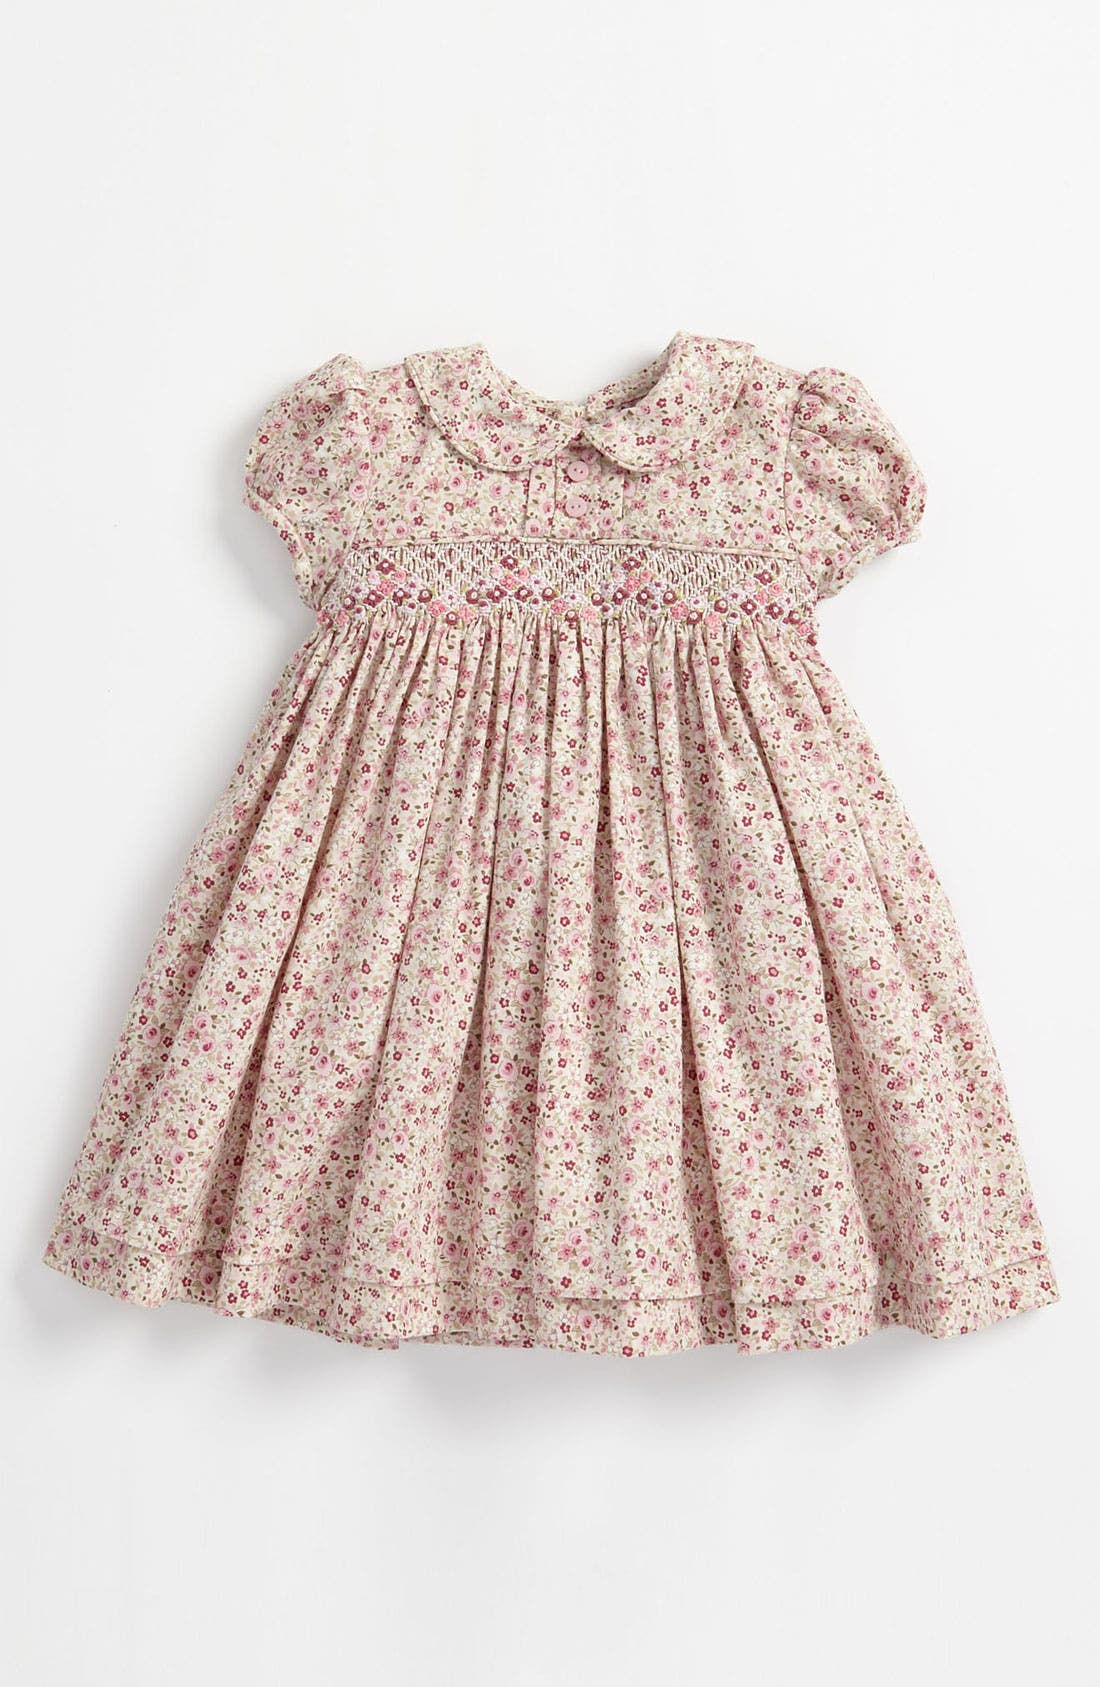 Product Description side and a mature smocked bodice make this a dress for any occasion.